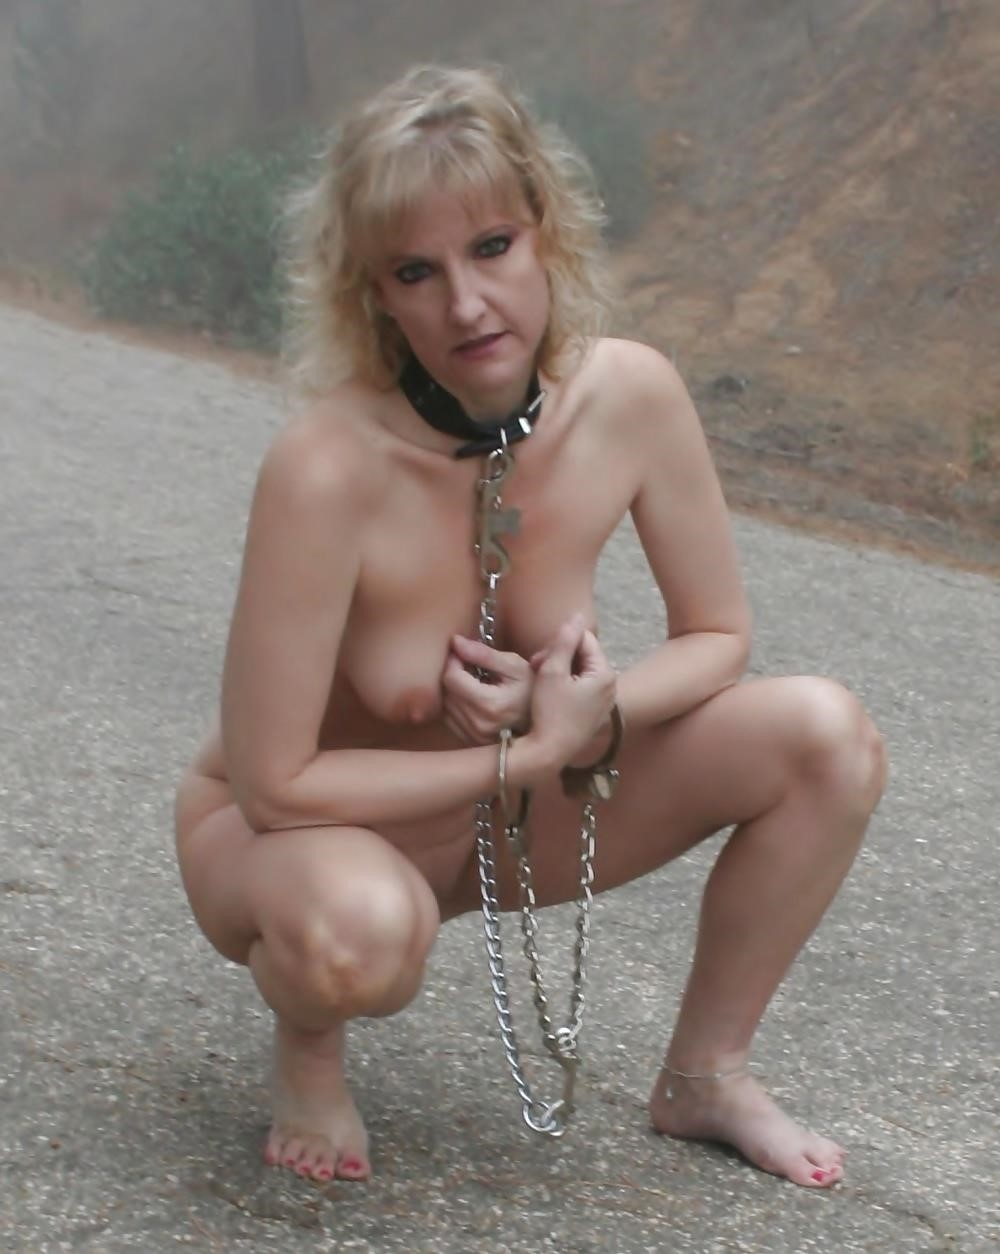 Naked pictures of ugly women-4527